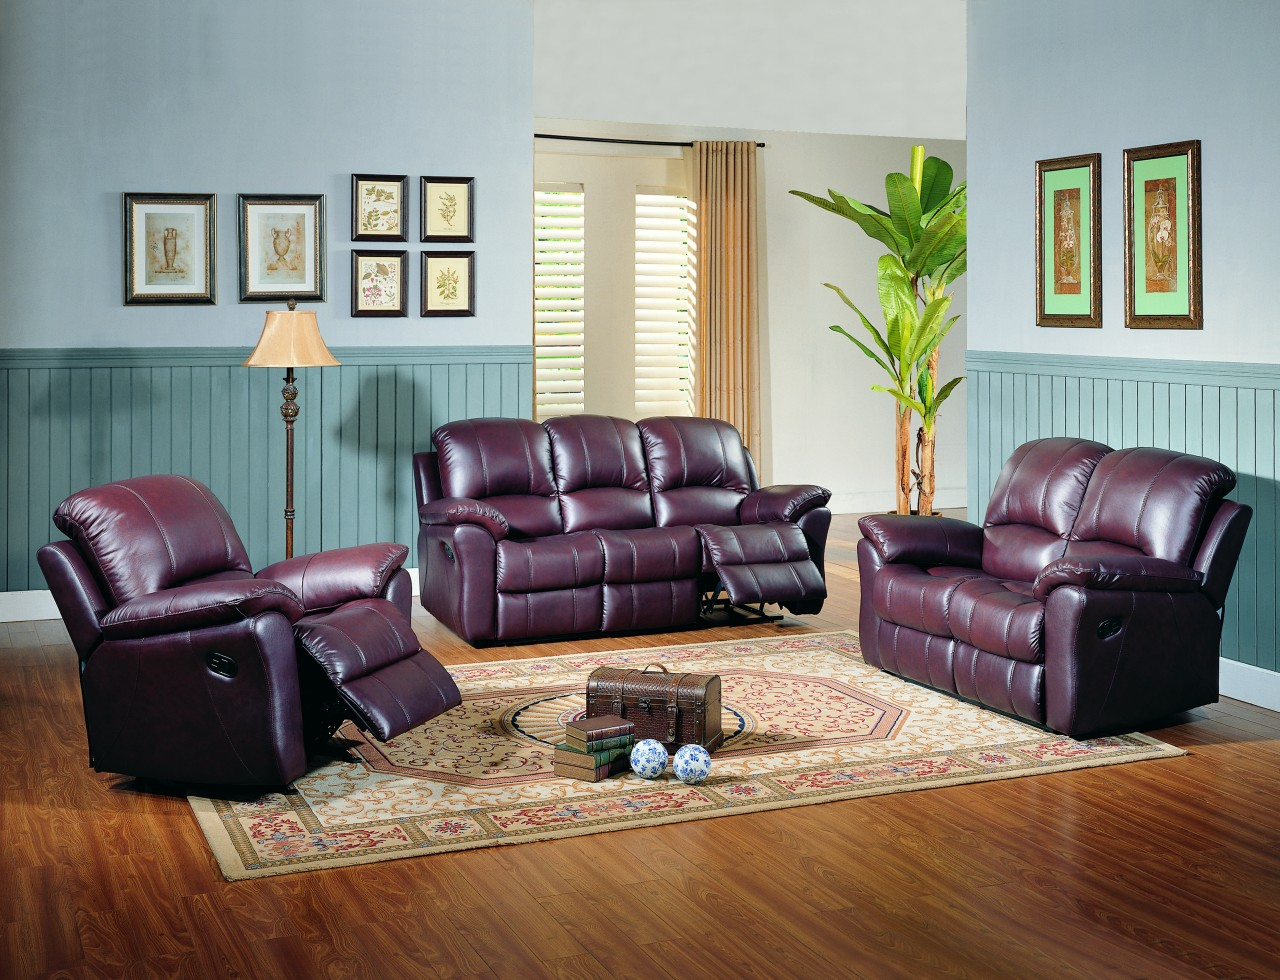 Parker living jupiter black cherry leather reclining sofa for Living room ideas with burgundy sofa